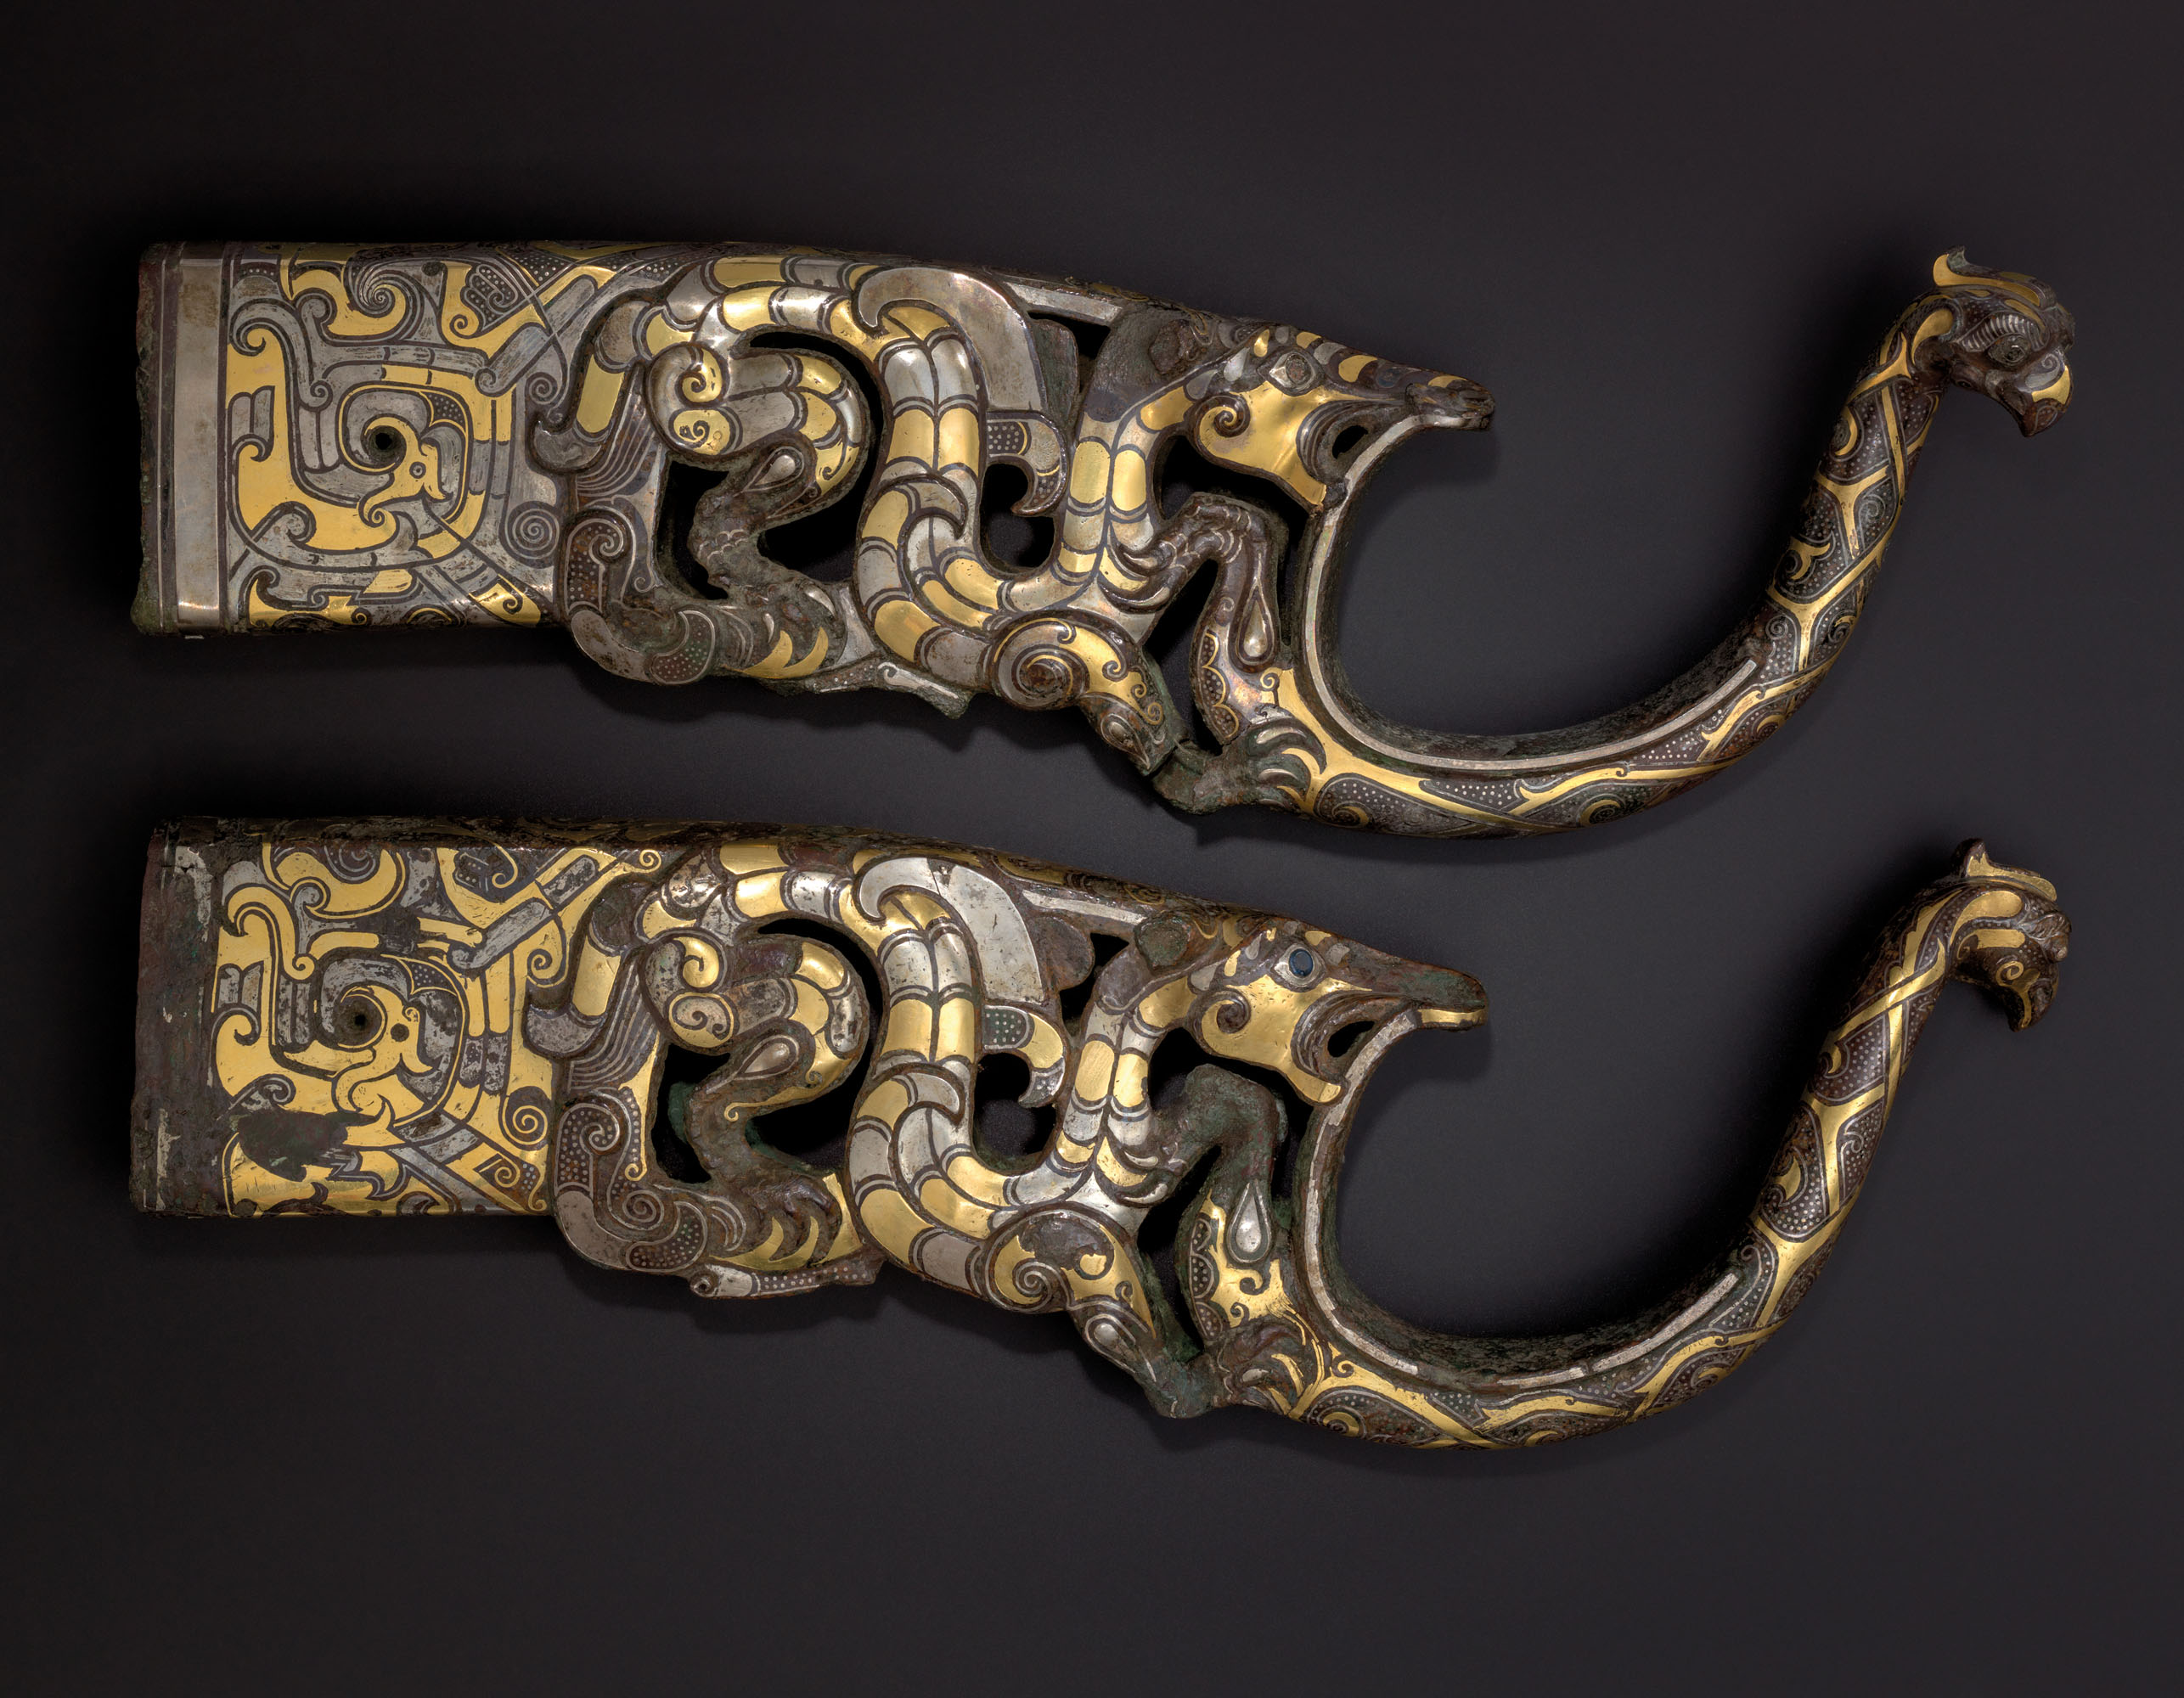 A RARE AND MAGNIFICENT PAIR OF GOLD AND SILVER-INLAID BRONZE CHARIOT FITTINGS